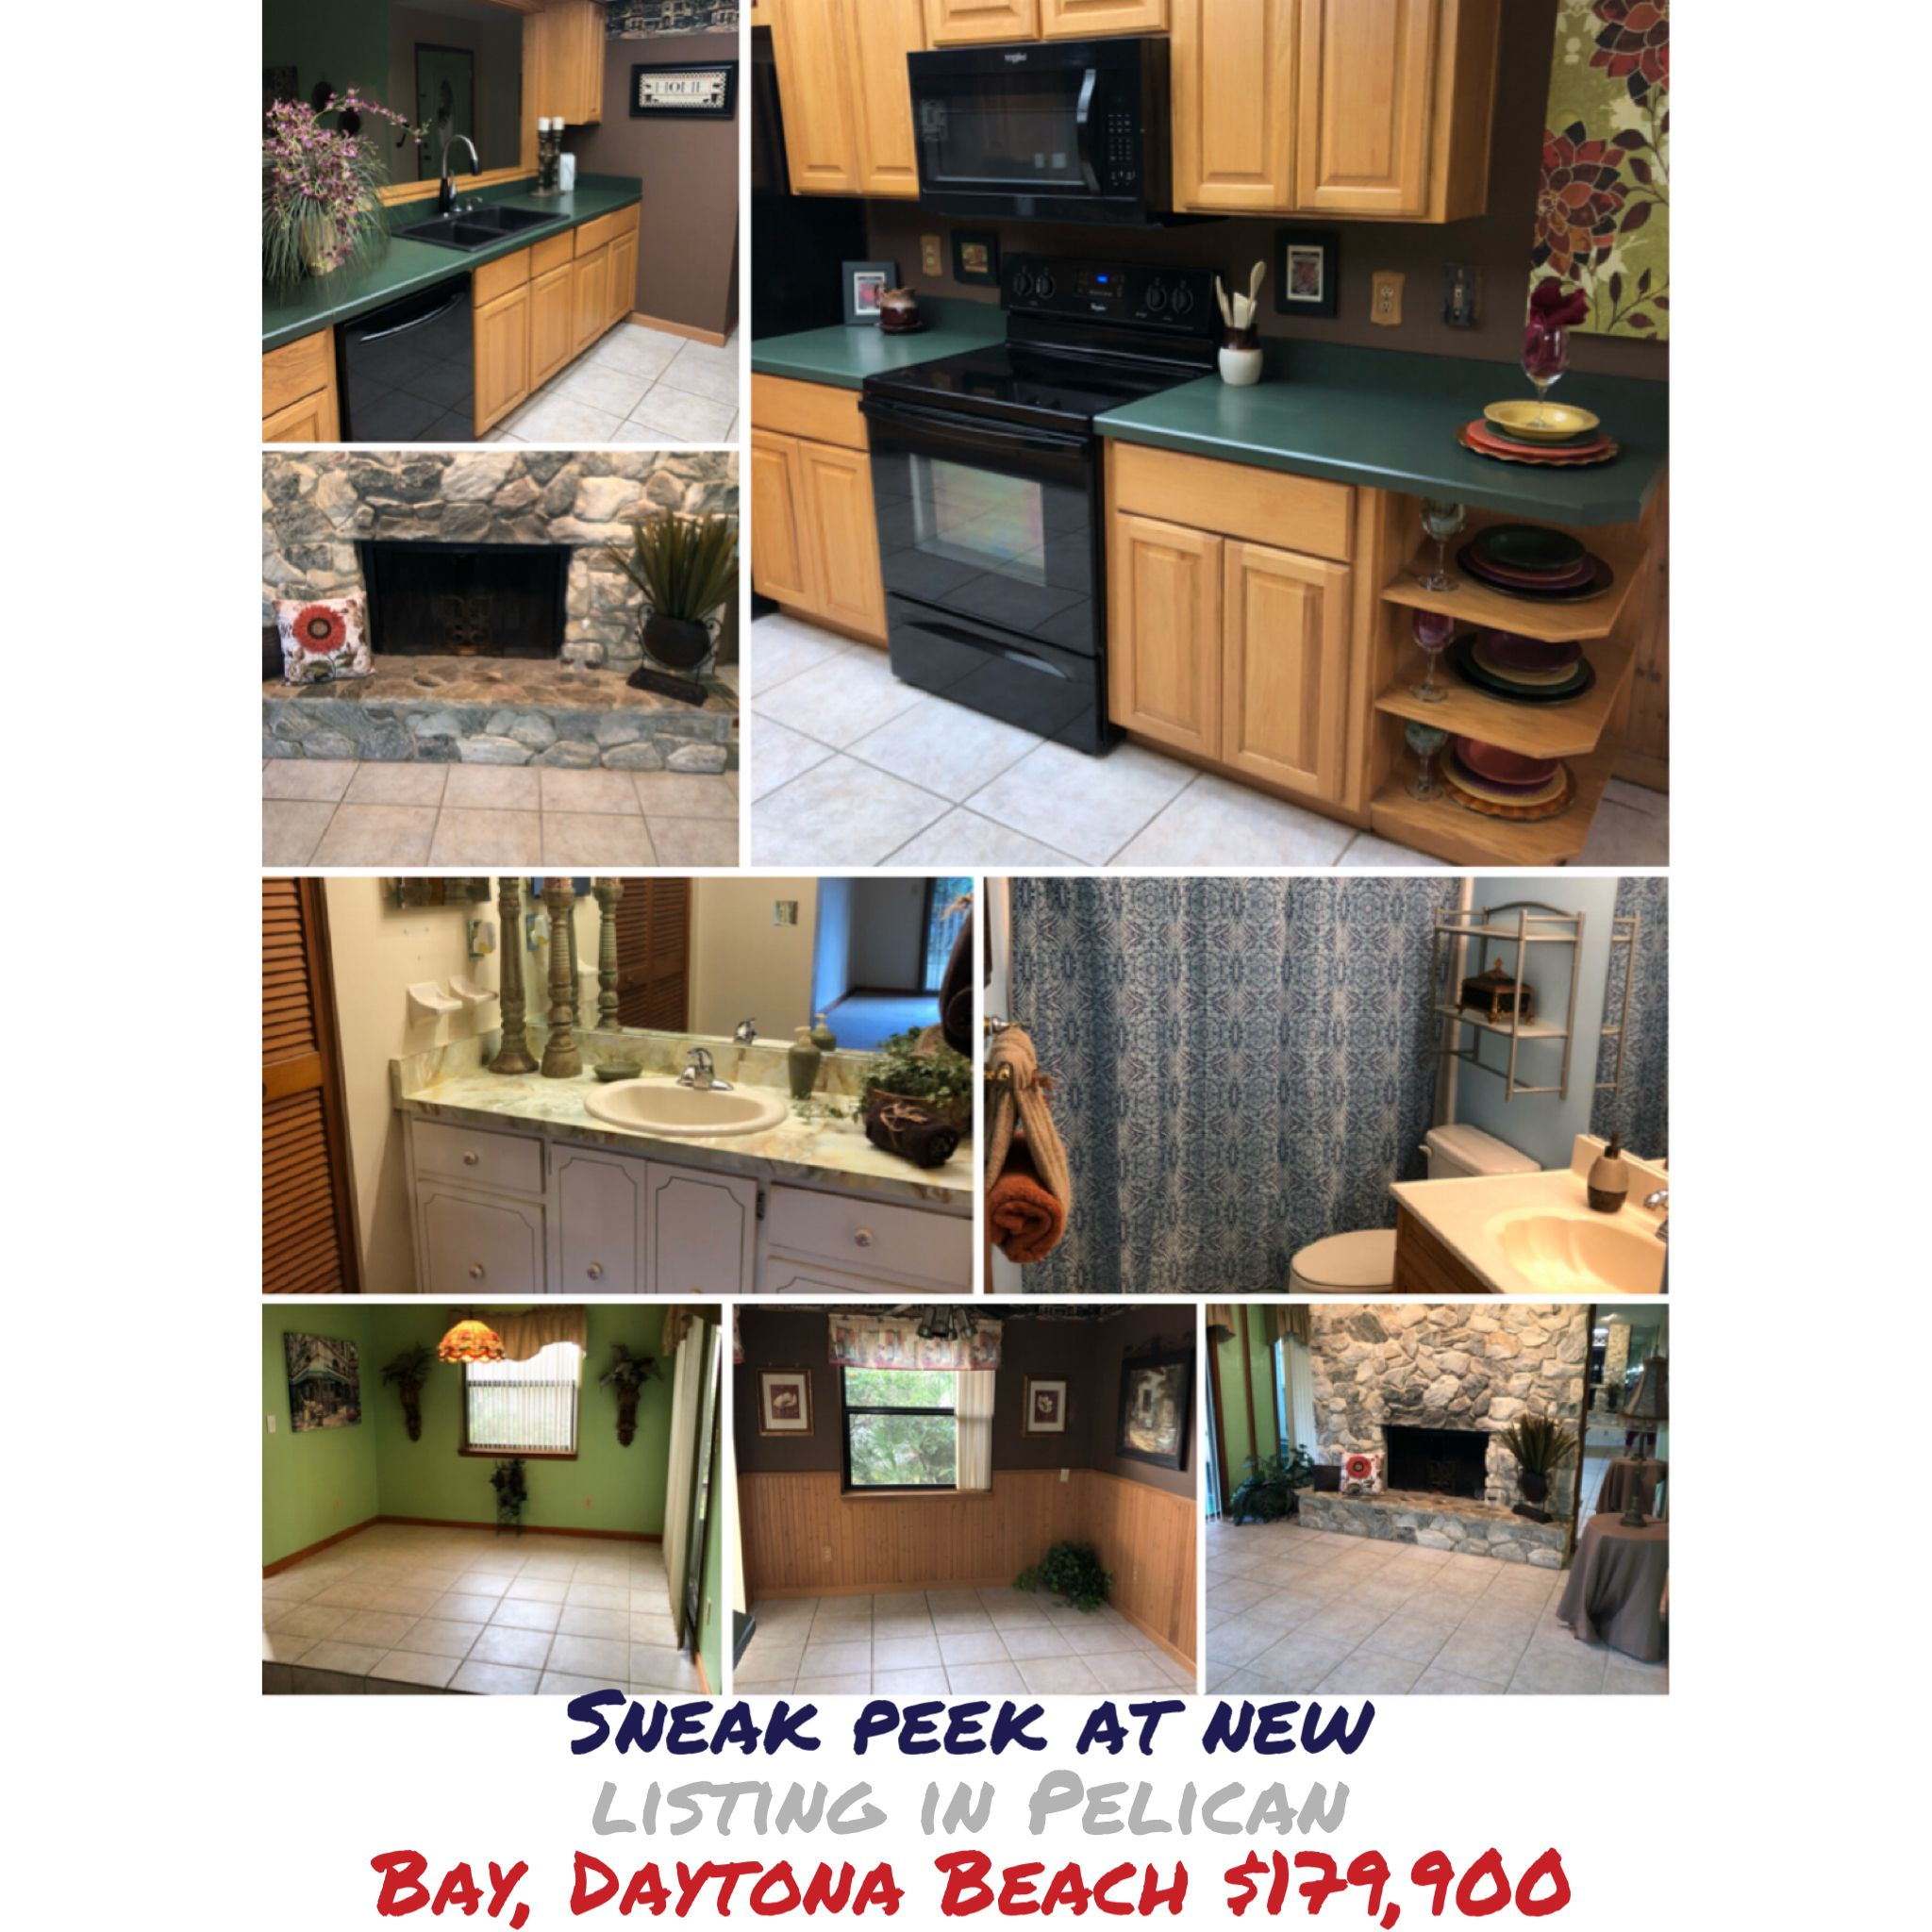 Sneak Peek At New Listing In Pelican Bay Daytona Beach 179 900 Bicoastalsoutherngirl Blessed Homestylist Southernc Pelican Bay Daytona Beach Dream House